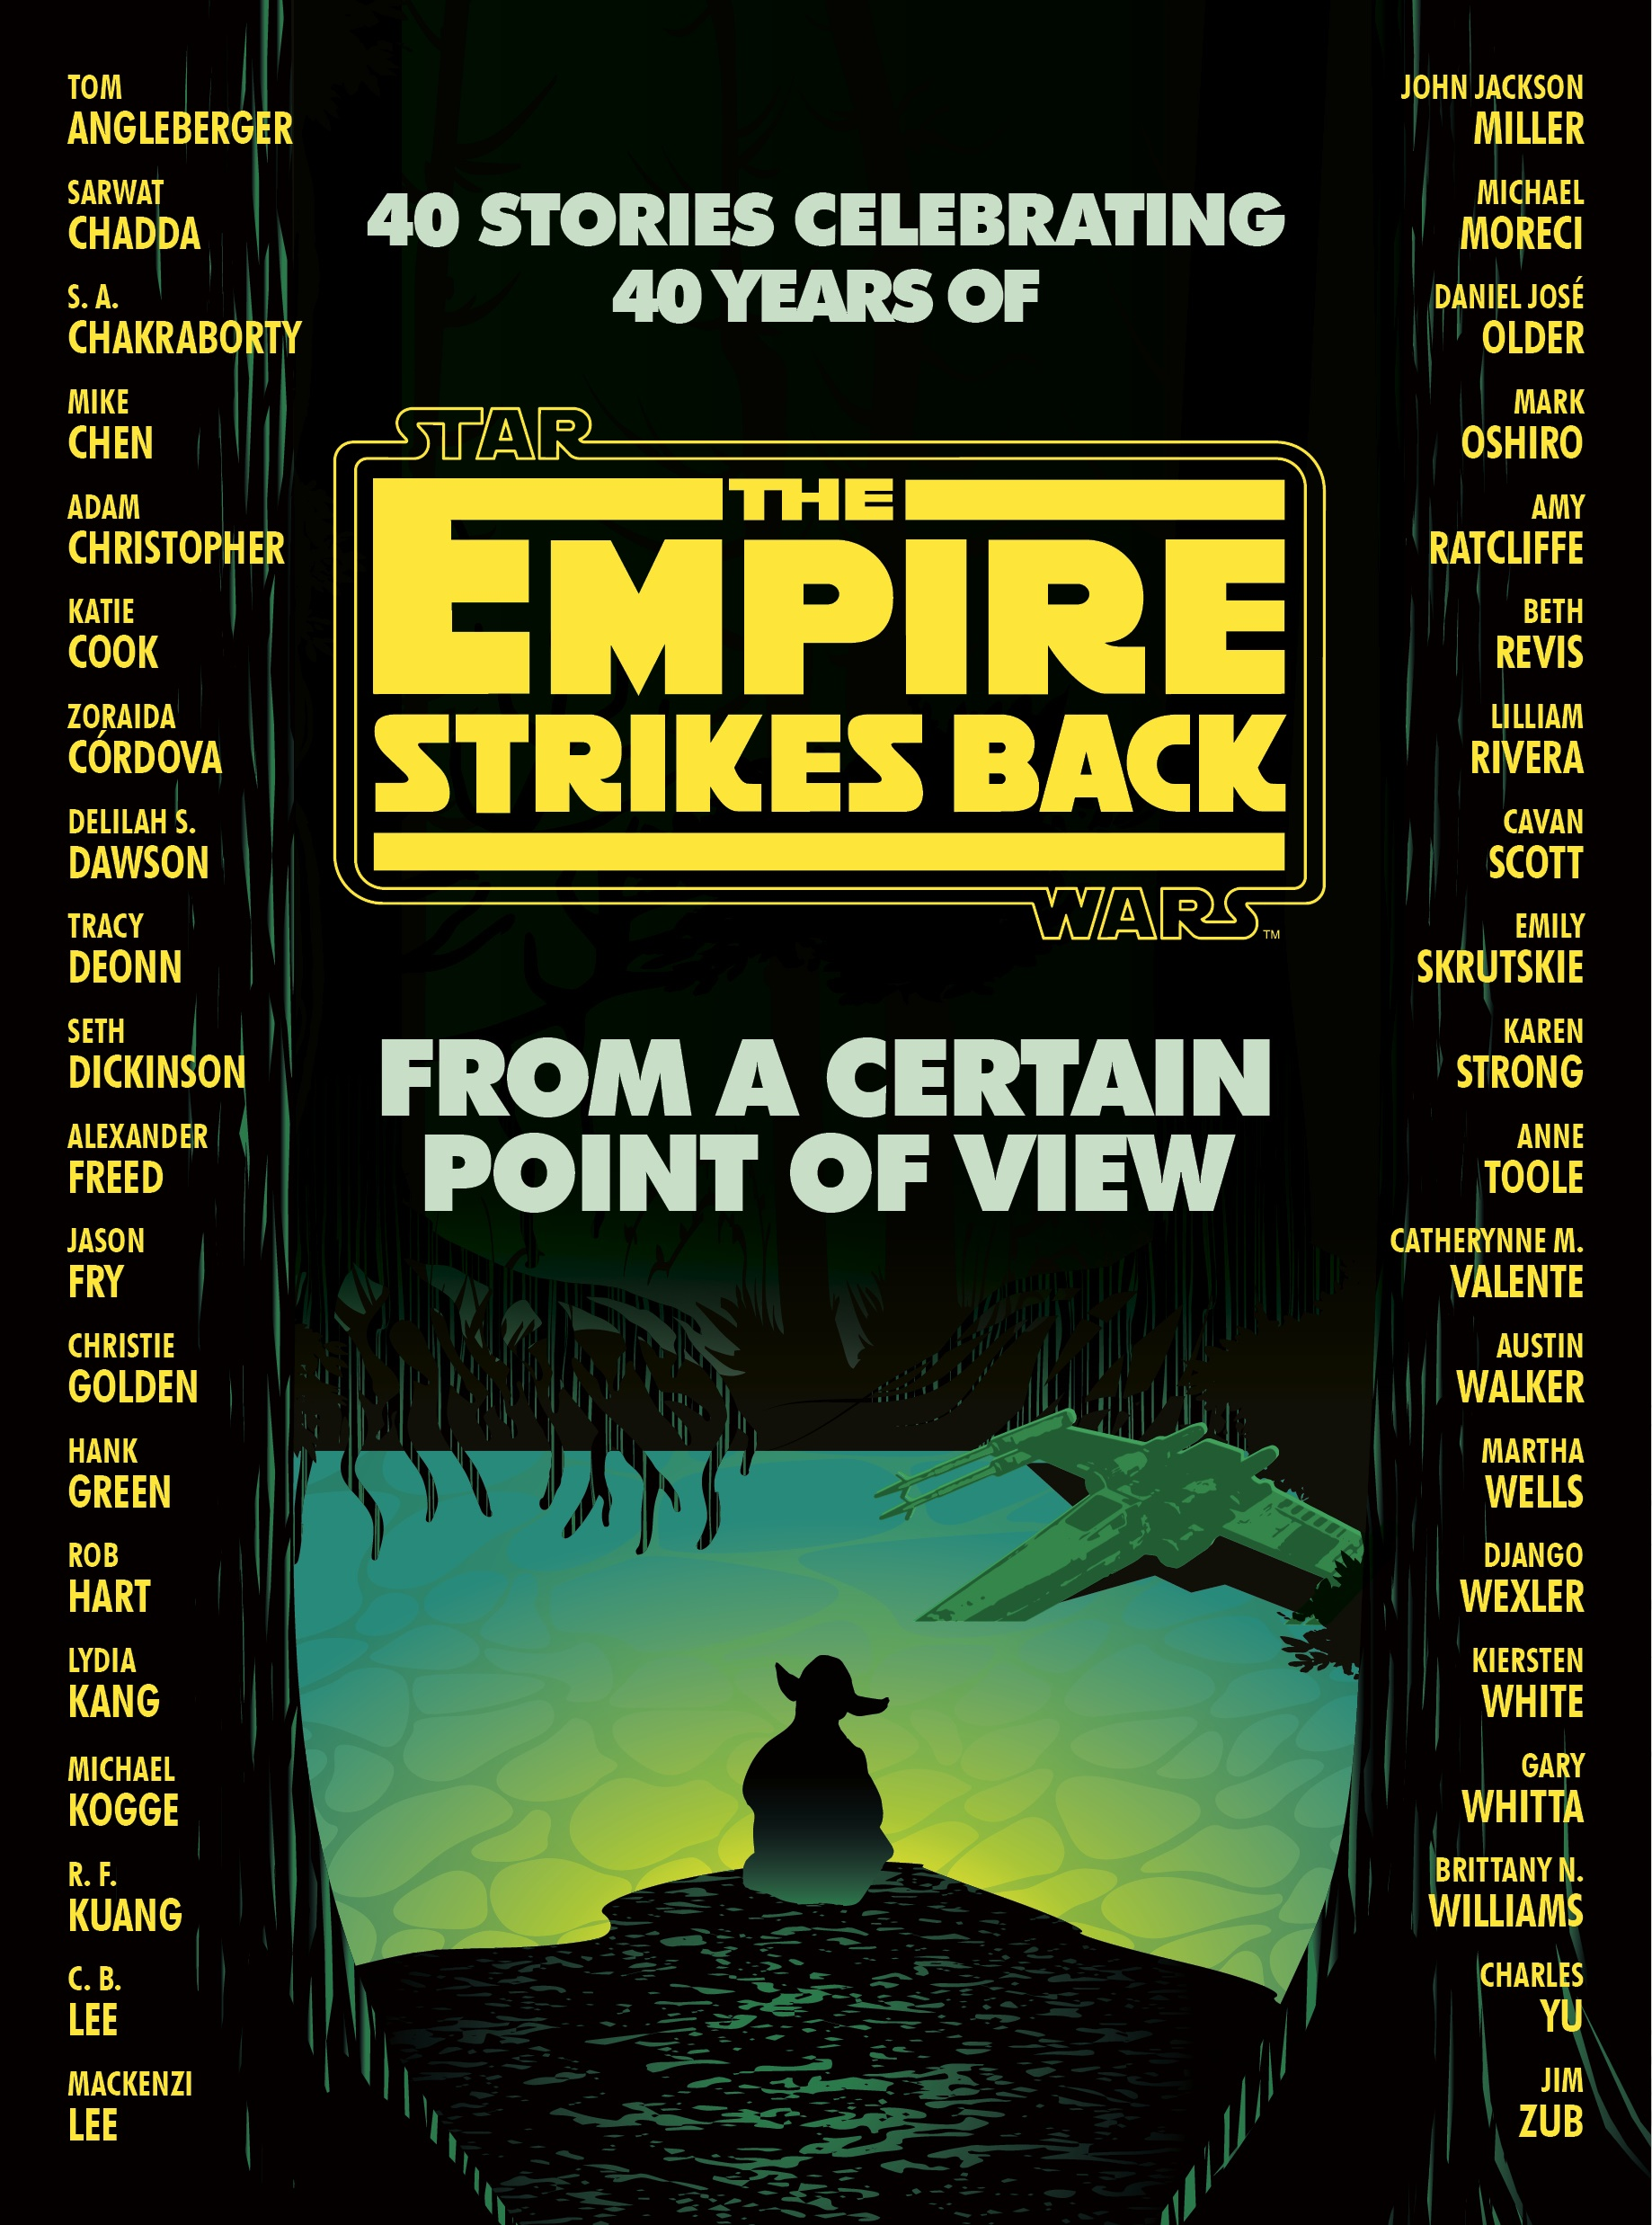 From a Certain Point of View: The Empire Strikes Back with contributions by various authors